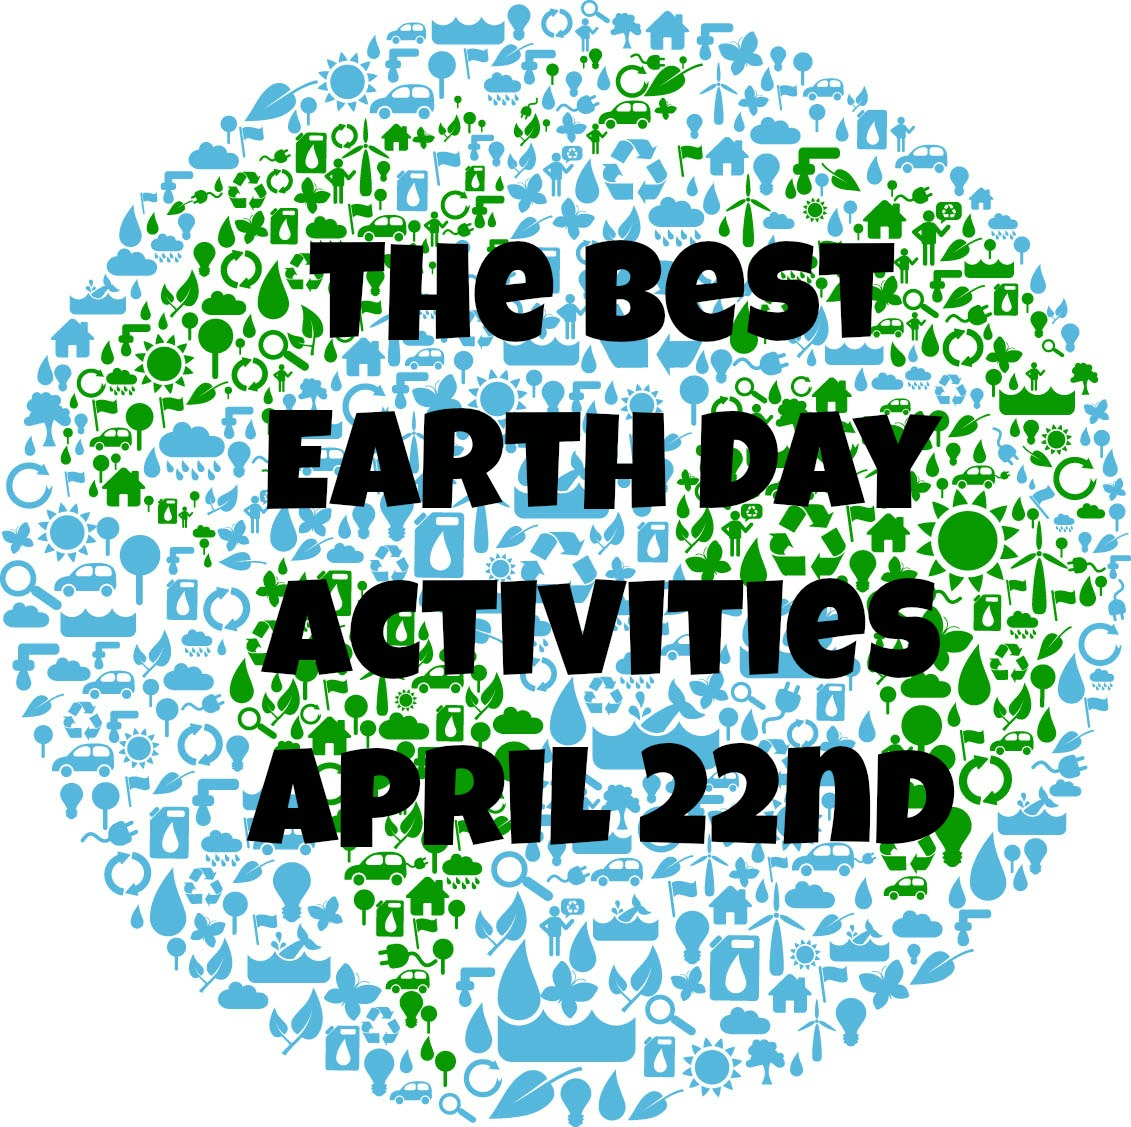 Some of the Best Things in Life are Mistakes: Earth Day Activities